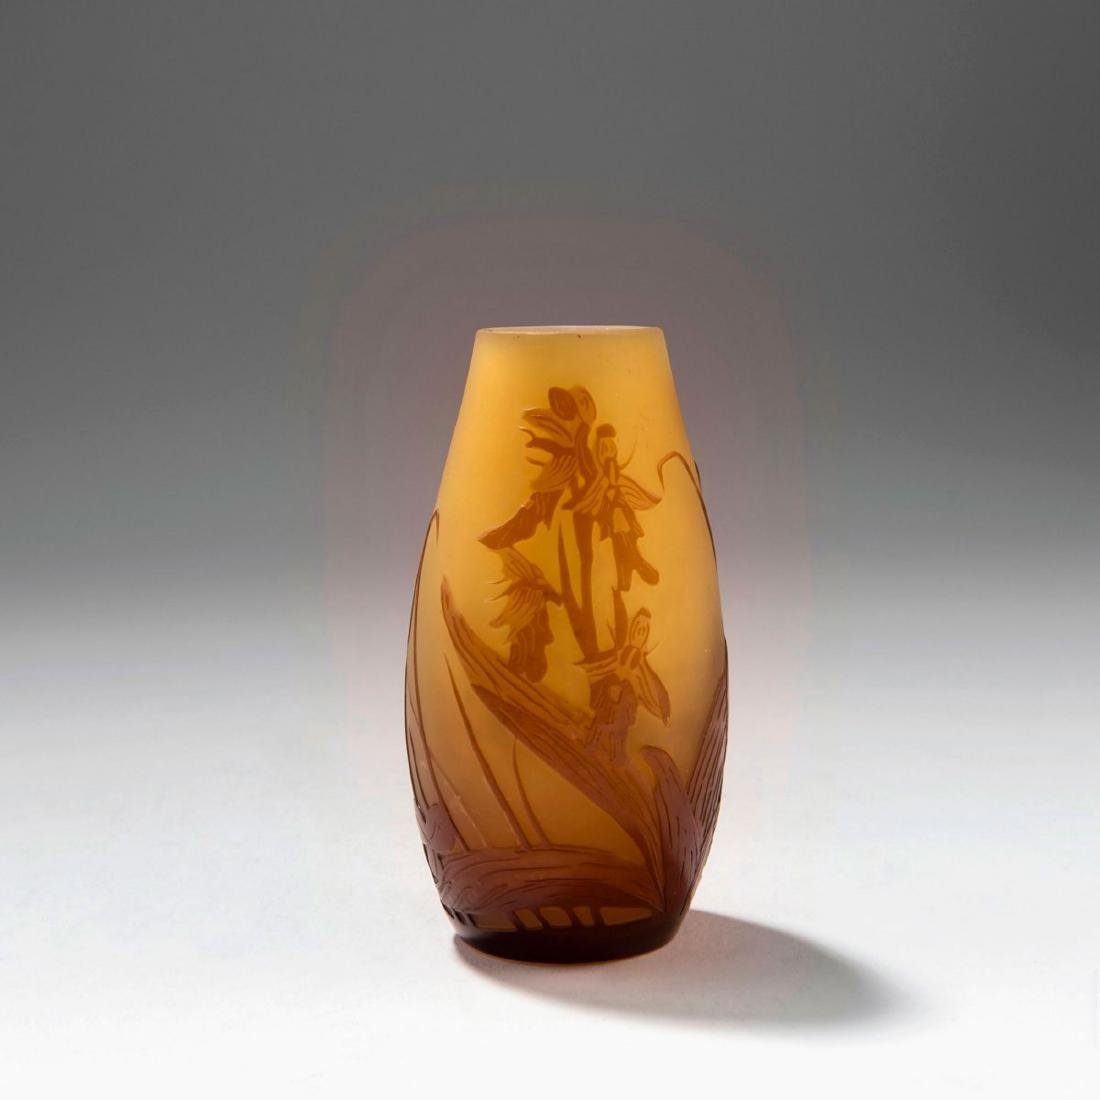 Small 'Orchidées' vase, 1906-14